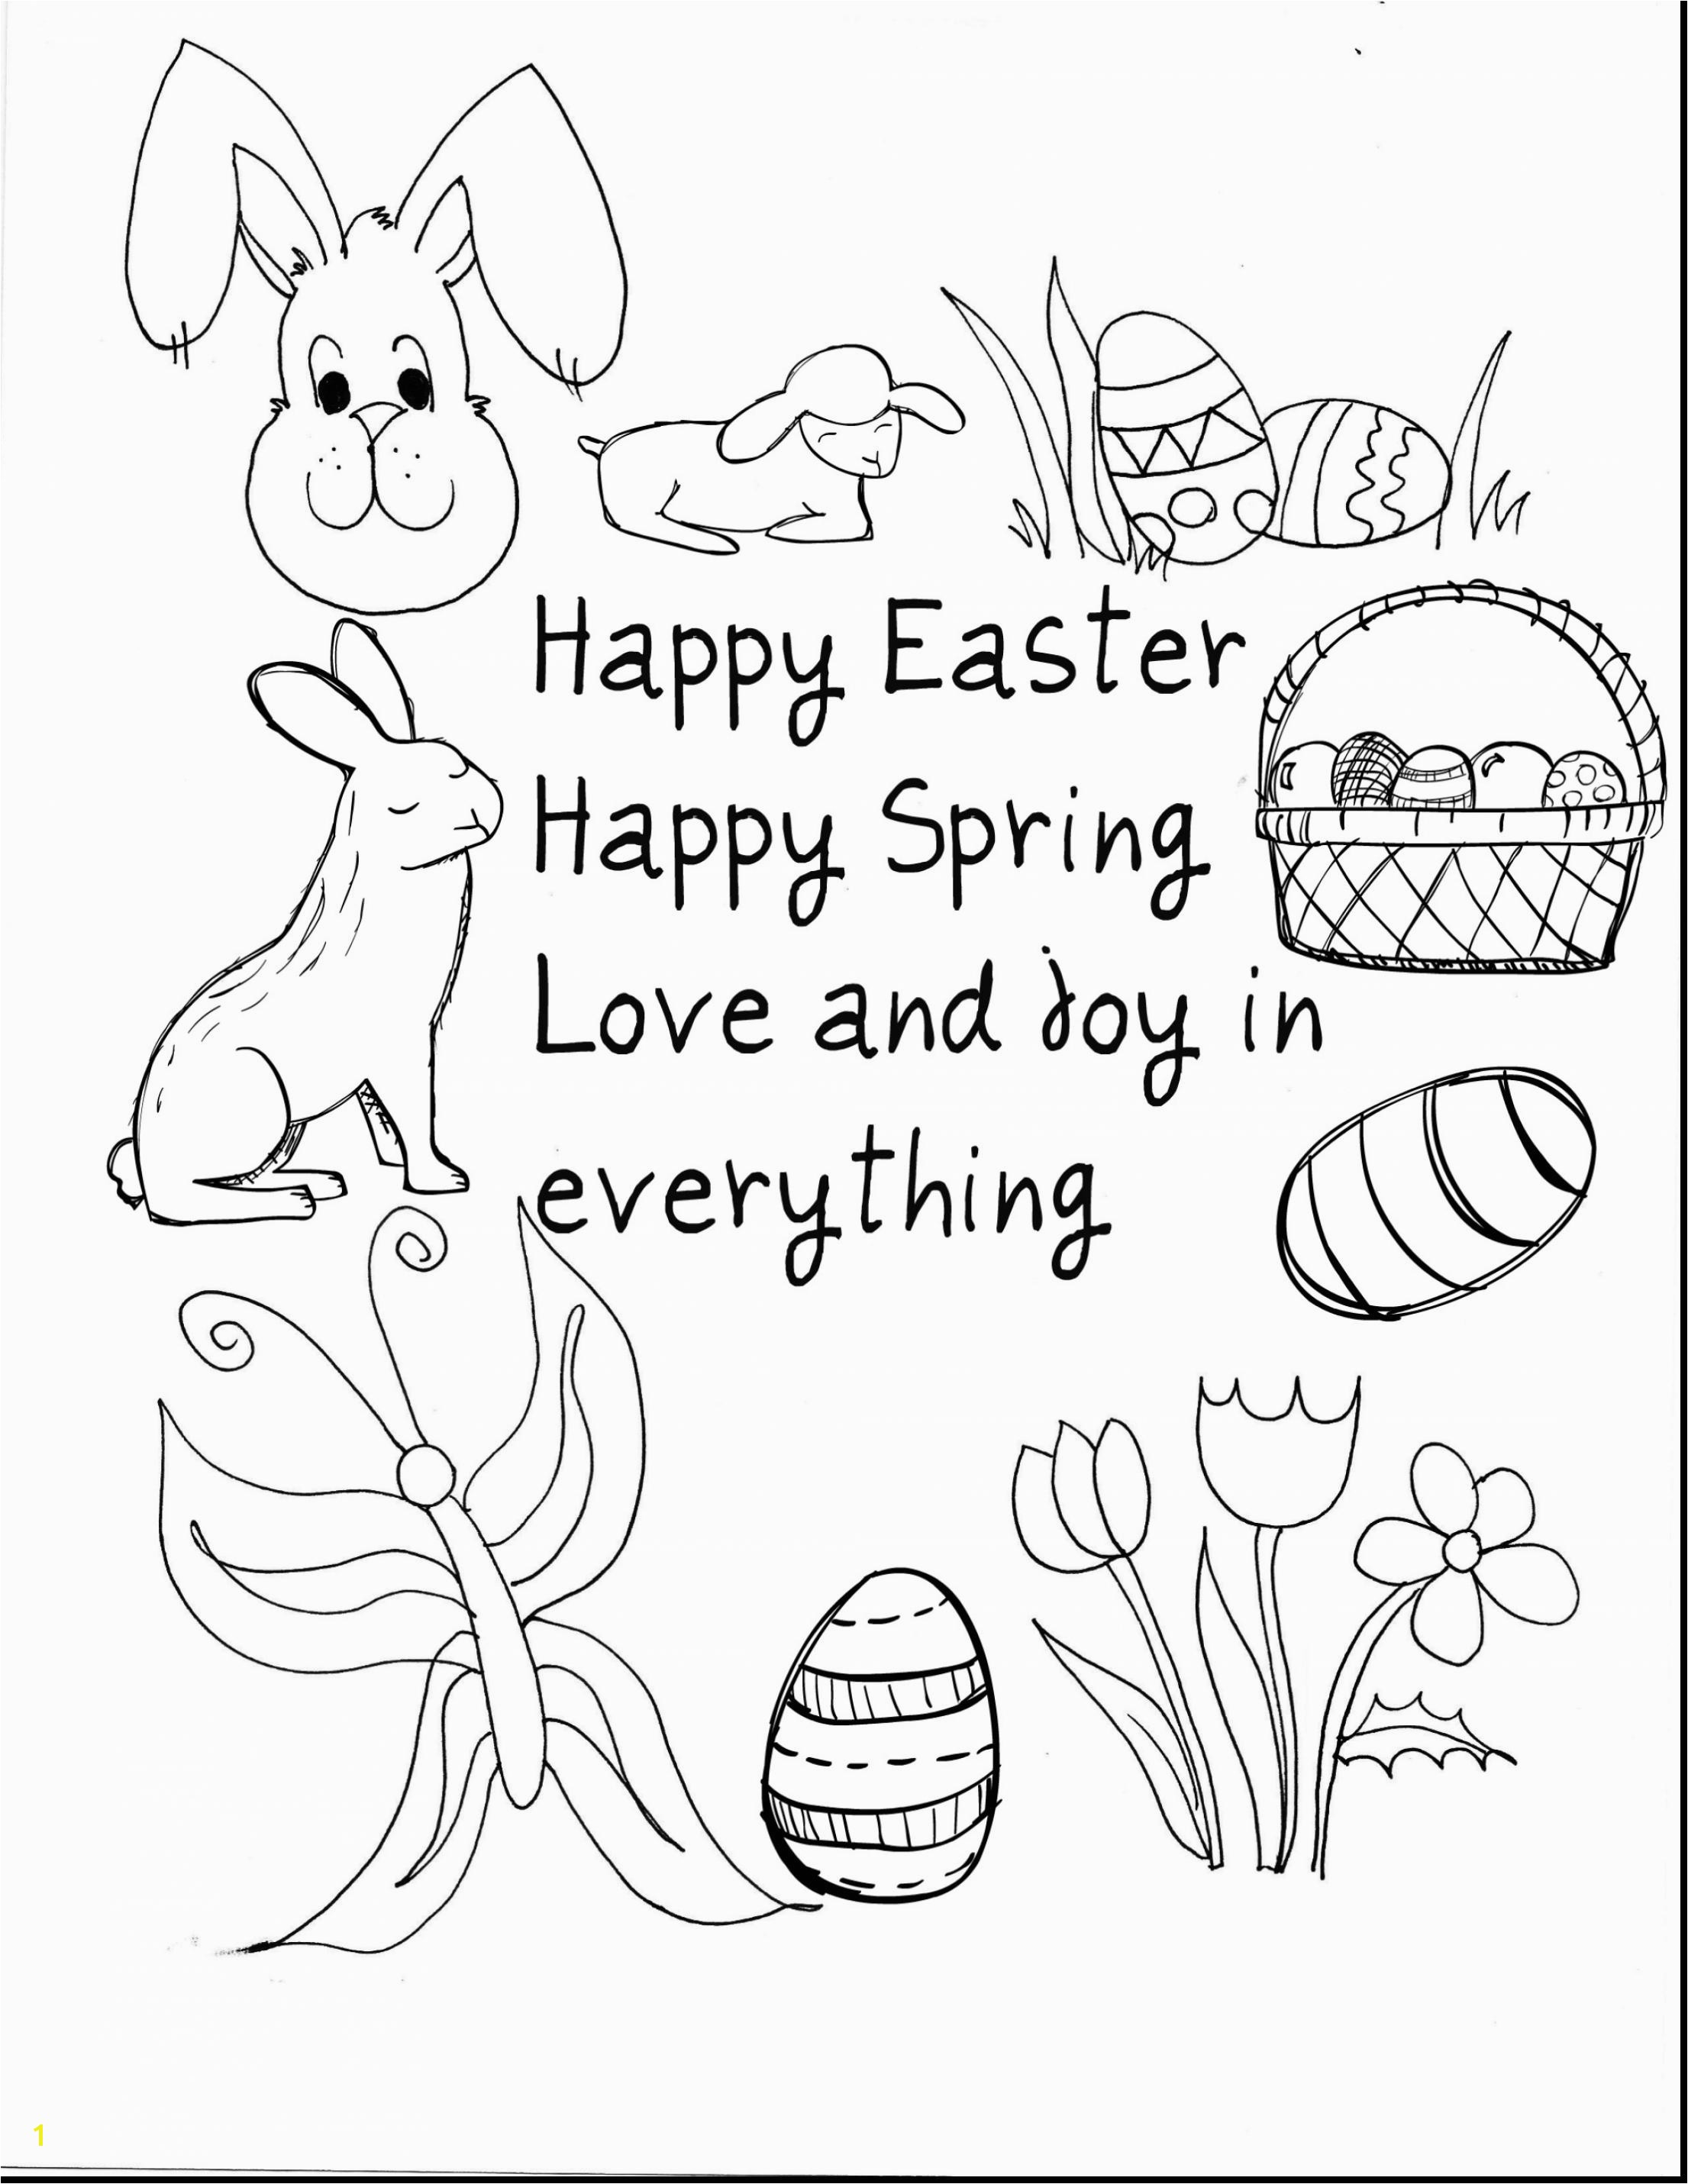 Luxury Free Sunday School Coloring Pages For Easter graph